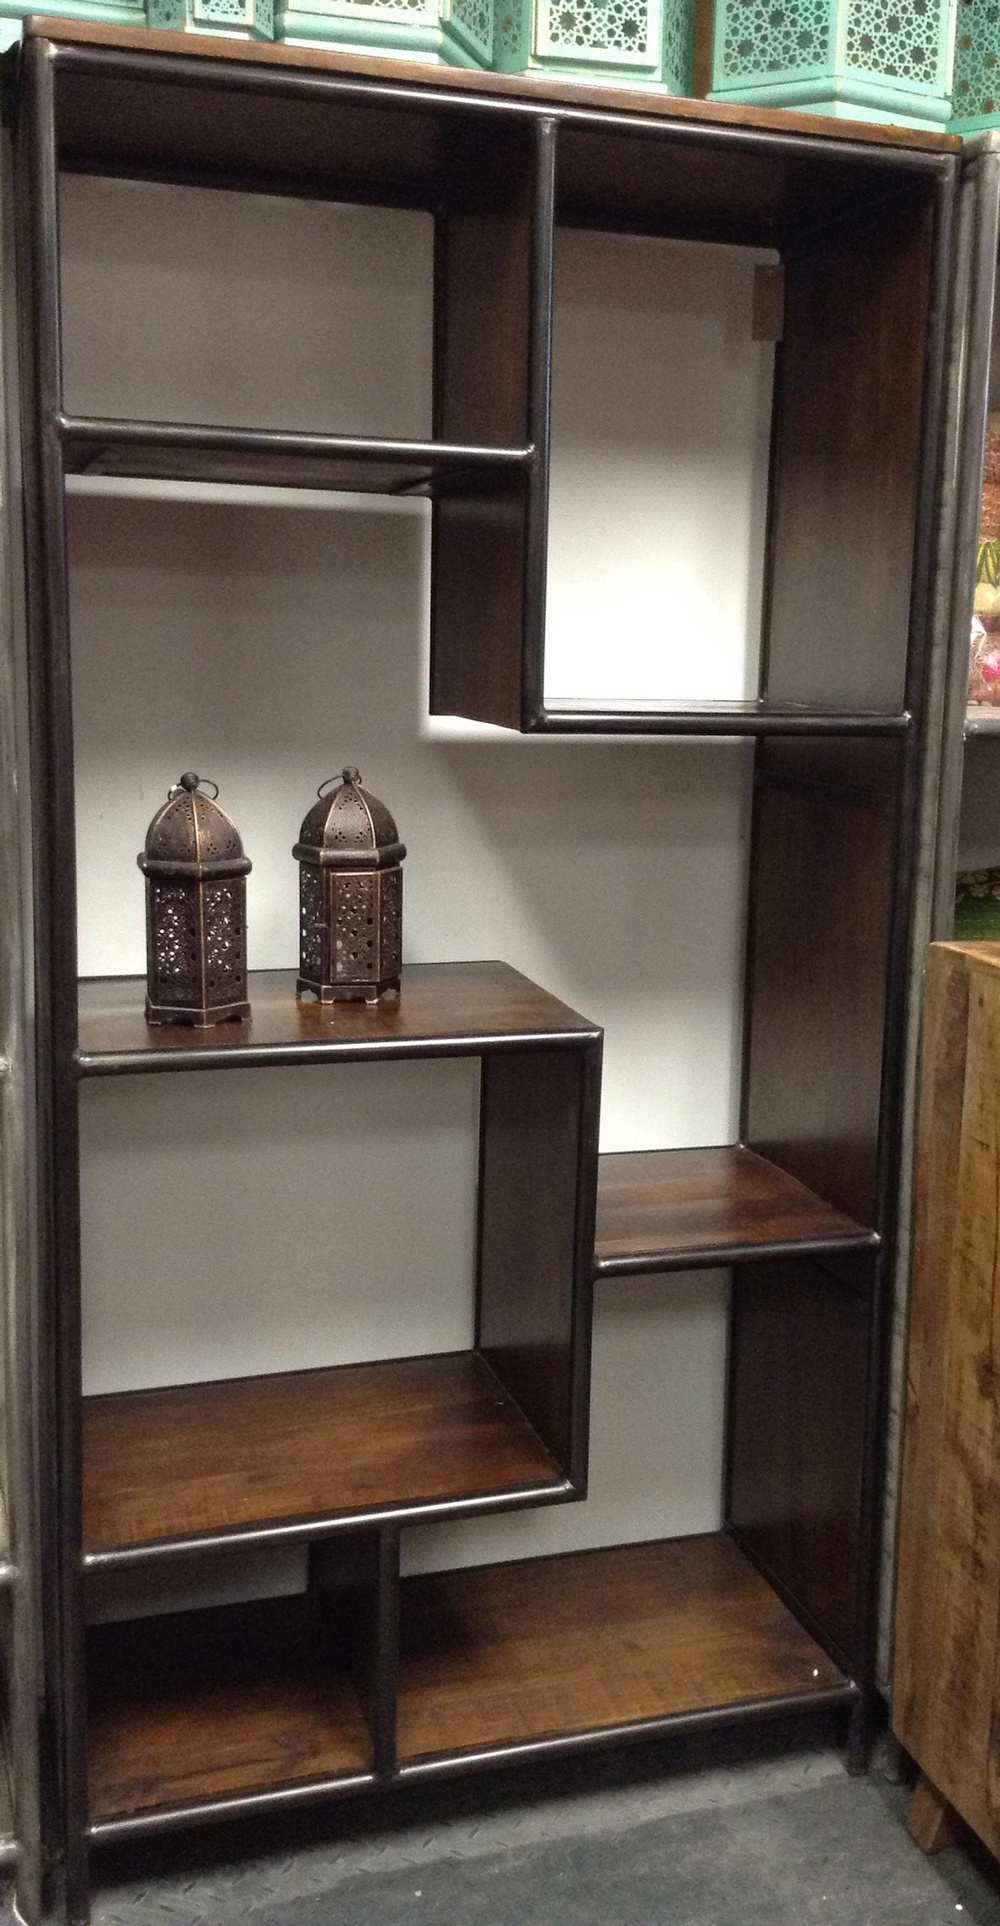 from display iron living wall com jewelry dhgate wood product wrought shelf bookcases panels room bookcase stock stores